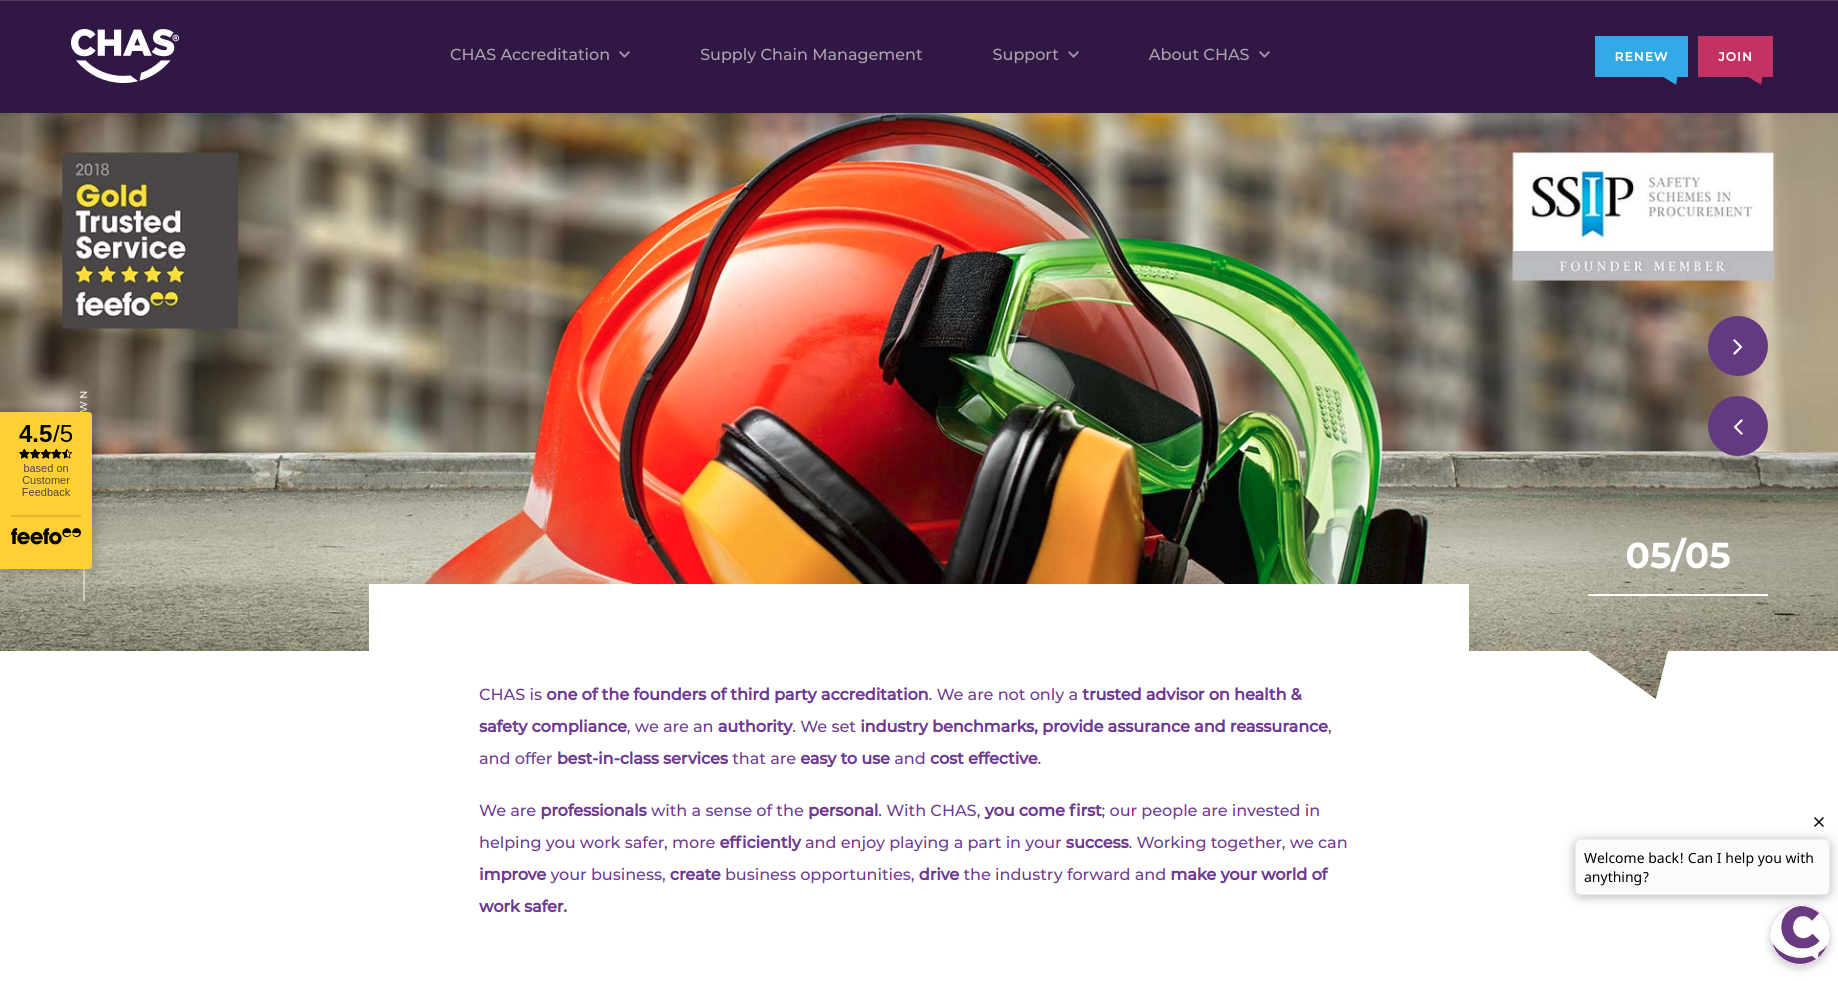 CHAS redesign home page